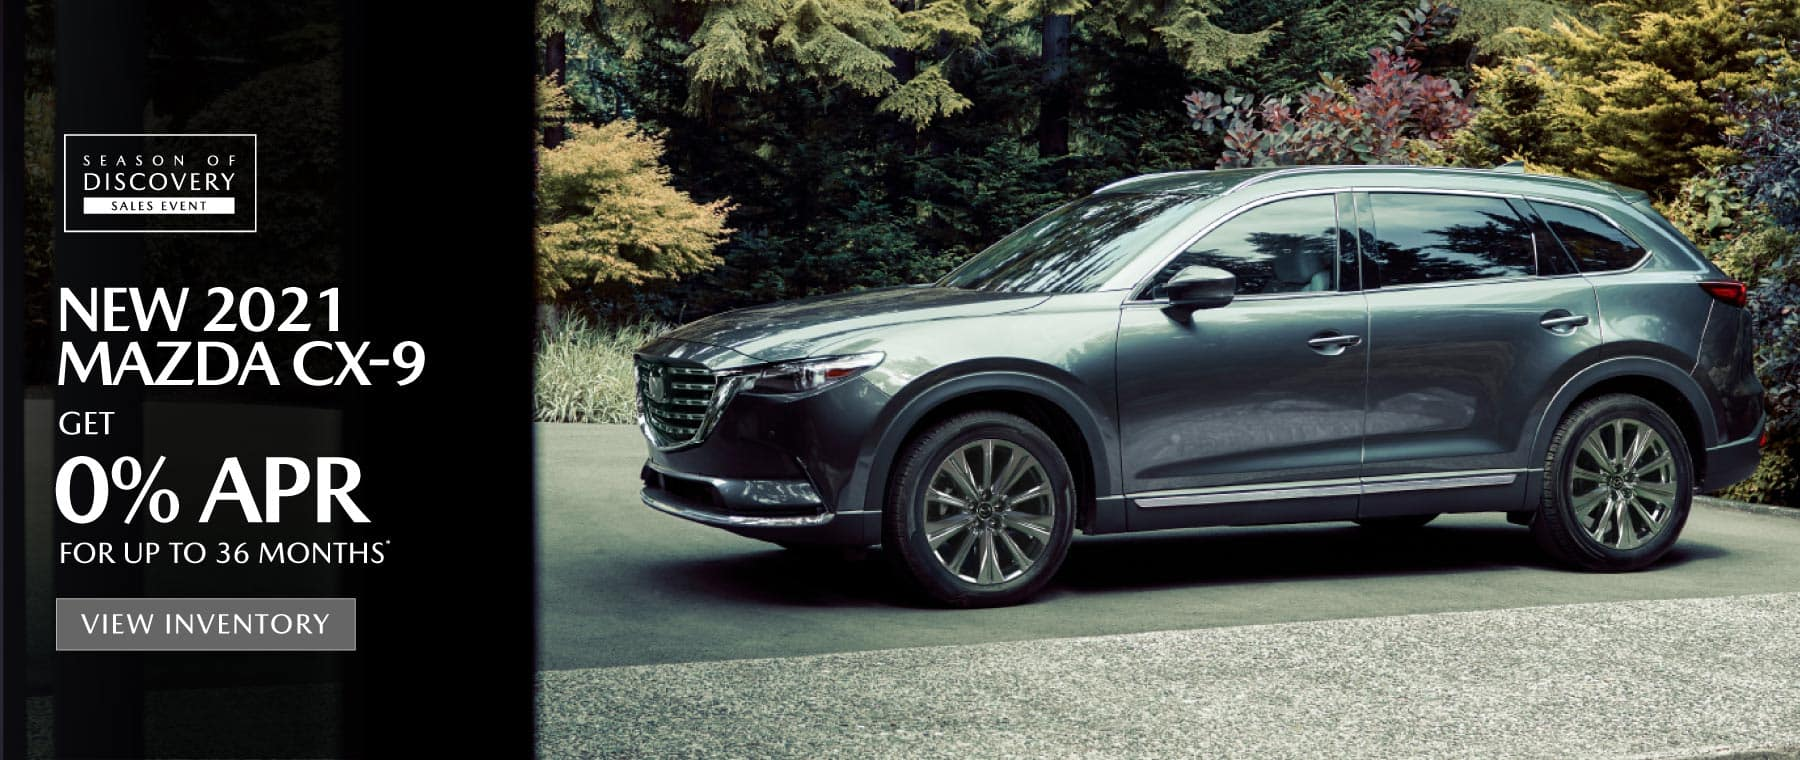 New 2021 MAZDA CX-9 – 0% APR for up to 36 months*